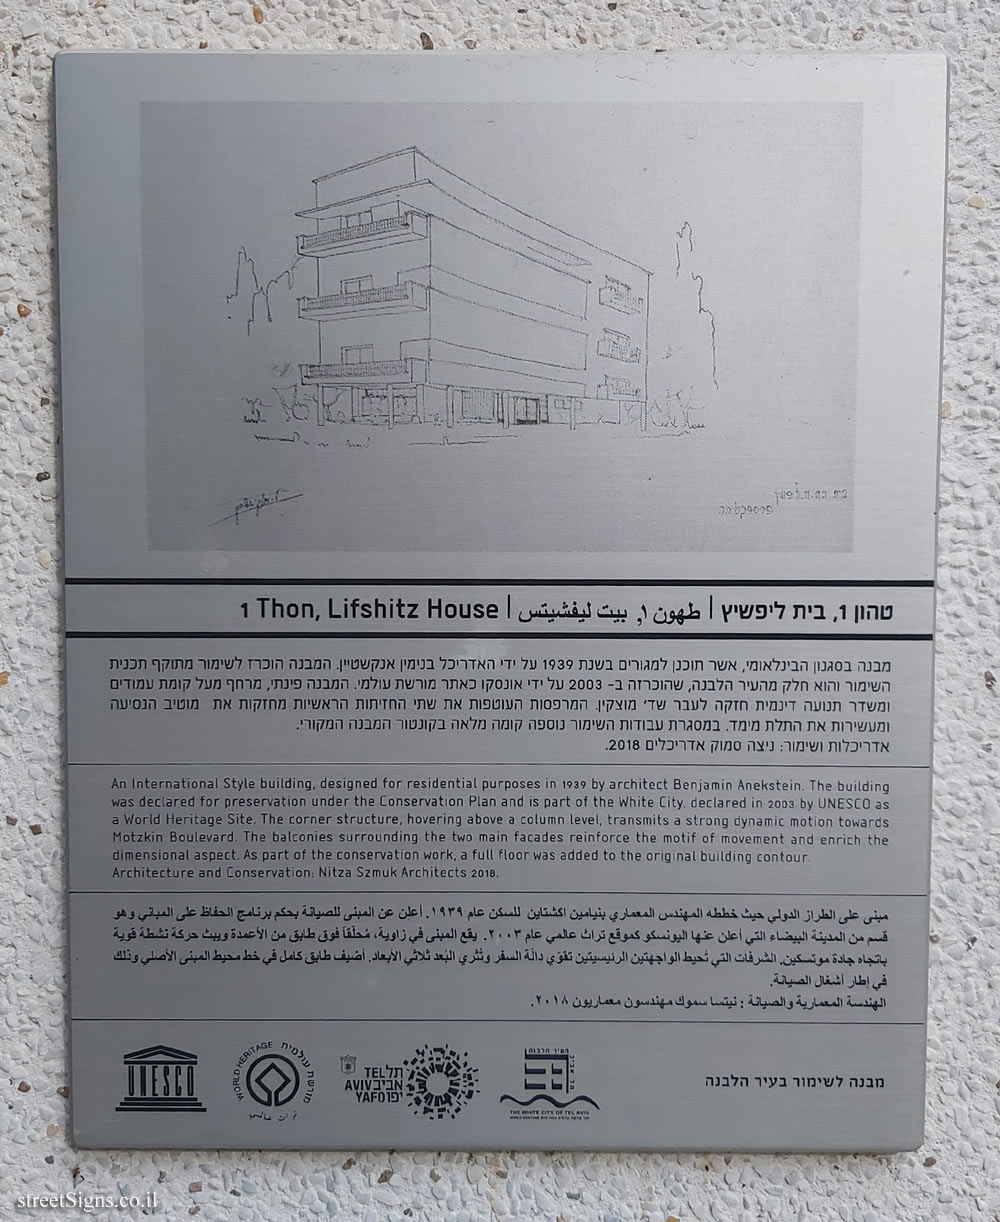 Tel Aviv - buildings for conservation - 1 Thon, Lifshitz House